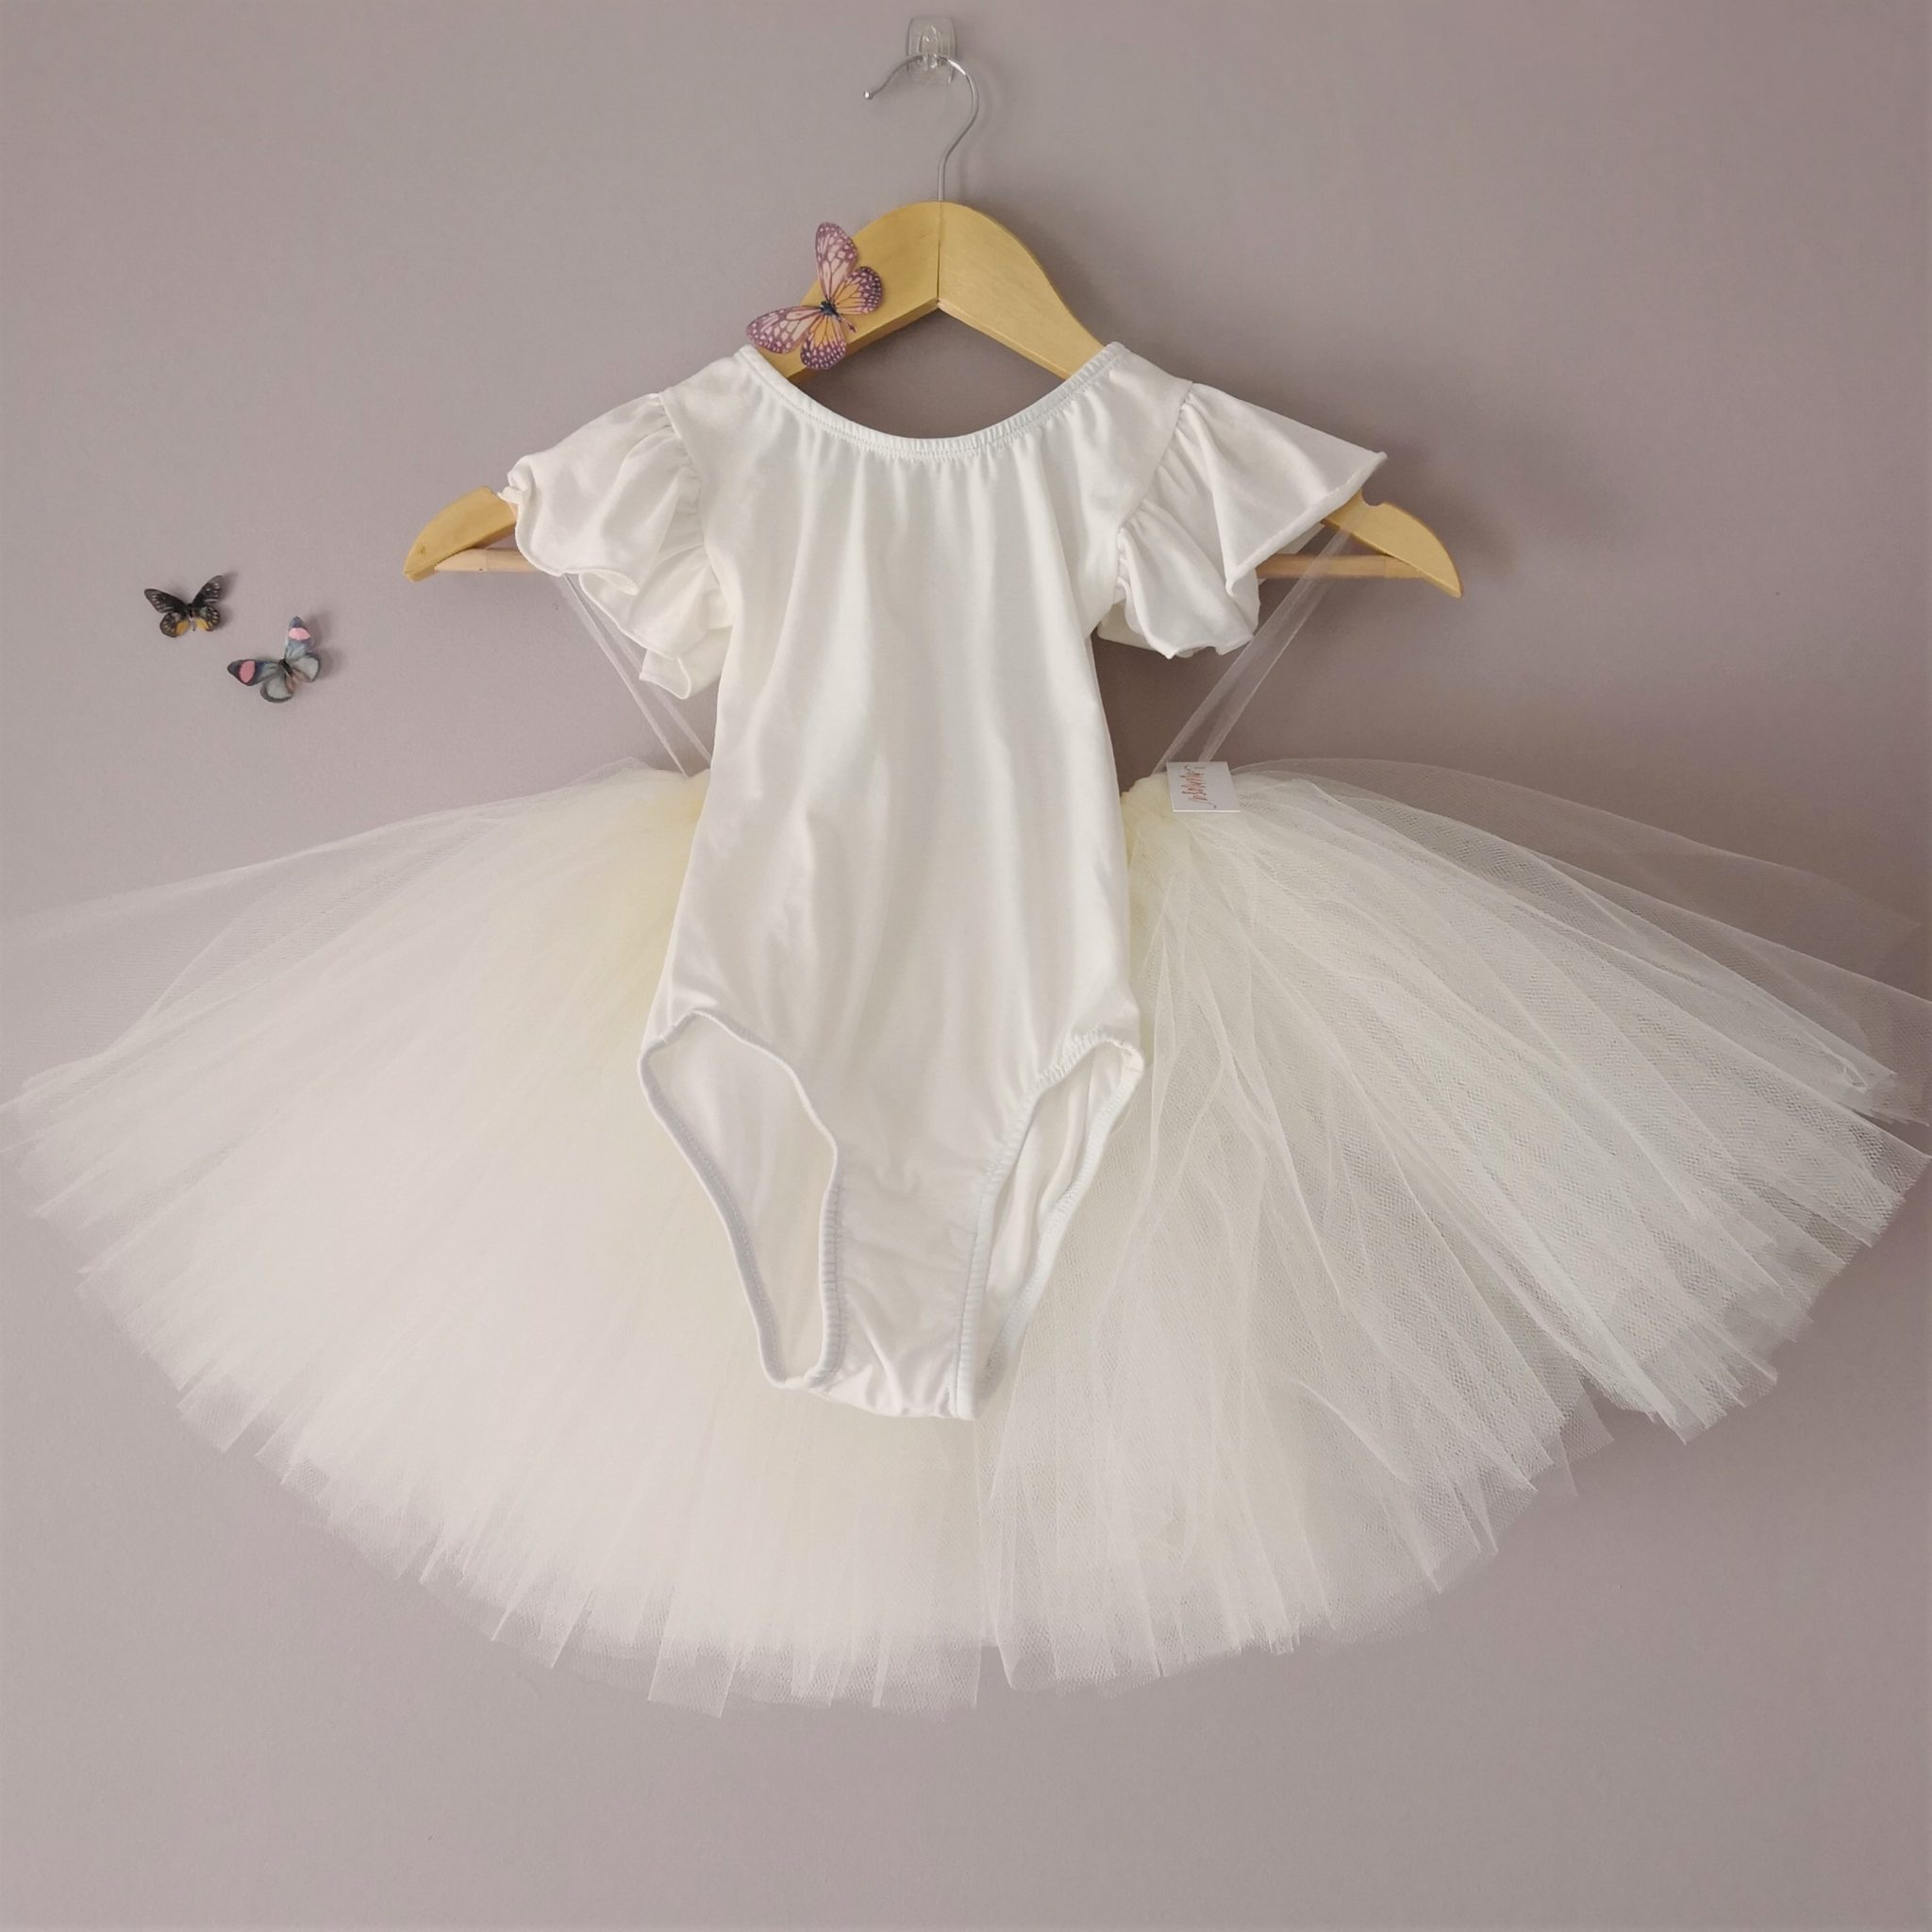 9c4d869ca4 Plain Stretch Cotton Frill Sleeve Bridesmaid and Flower Girl s Leotard  Bodysuit. Ivory and White